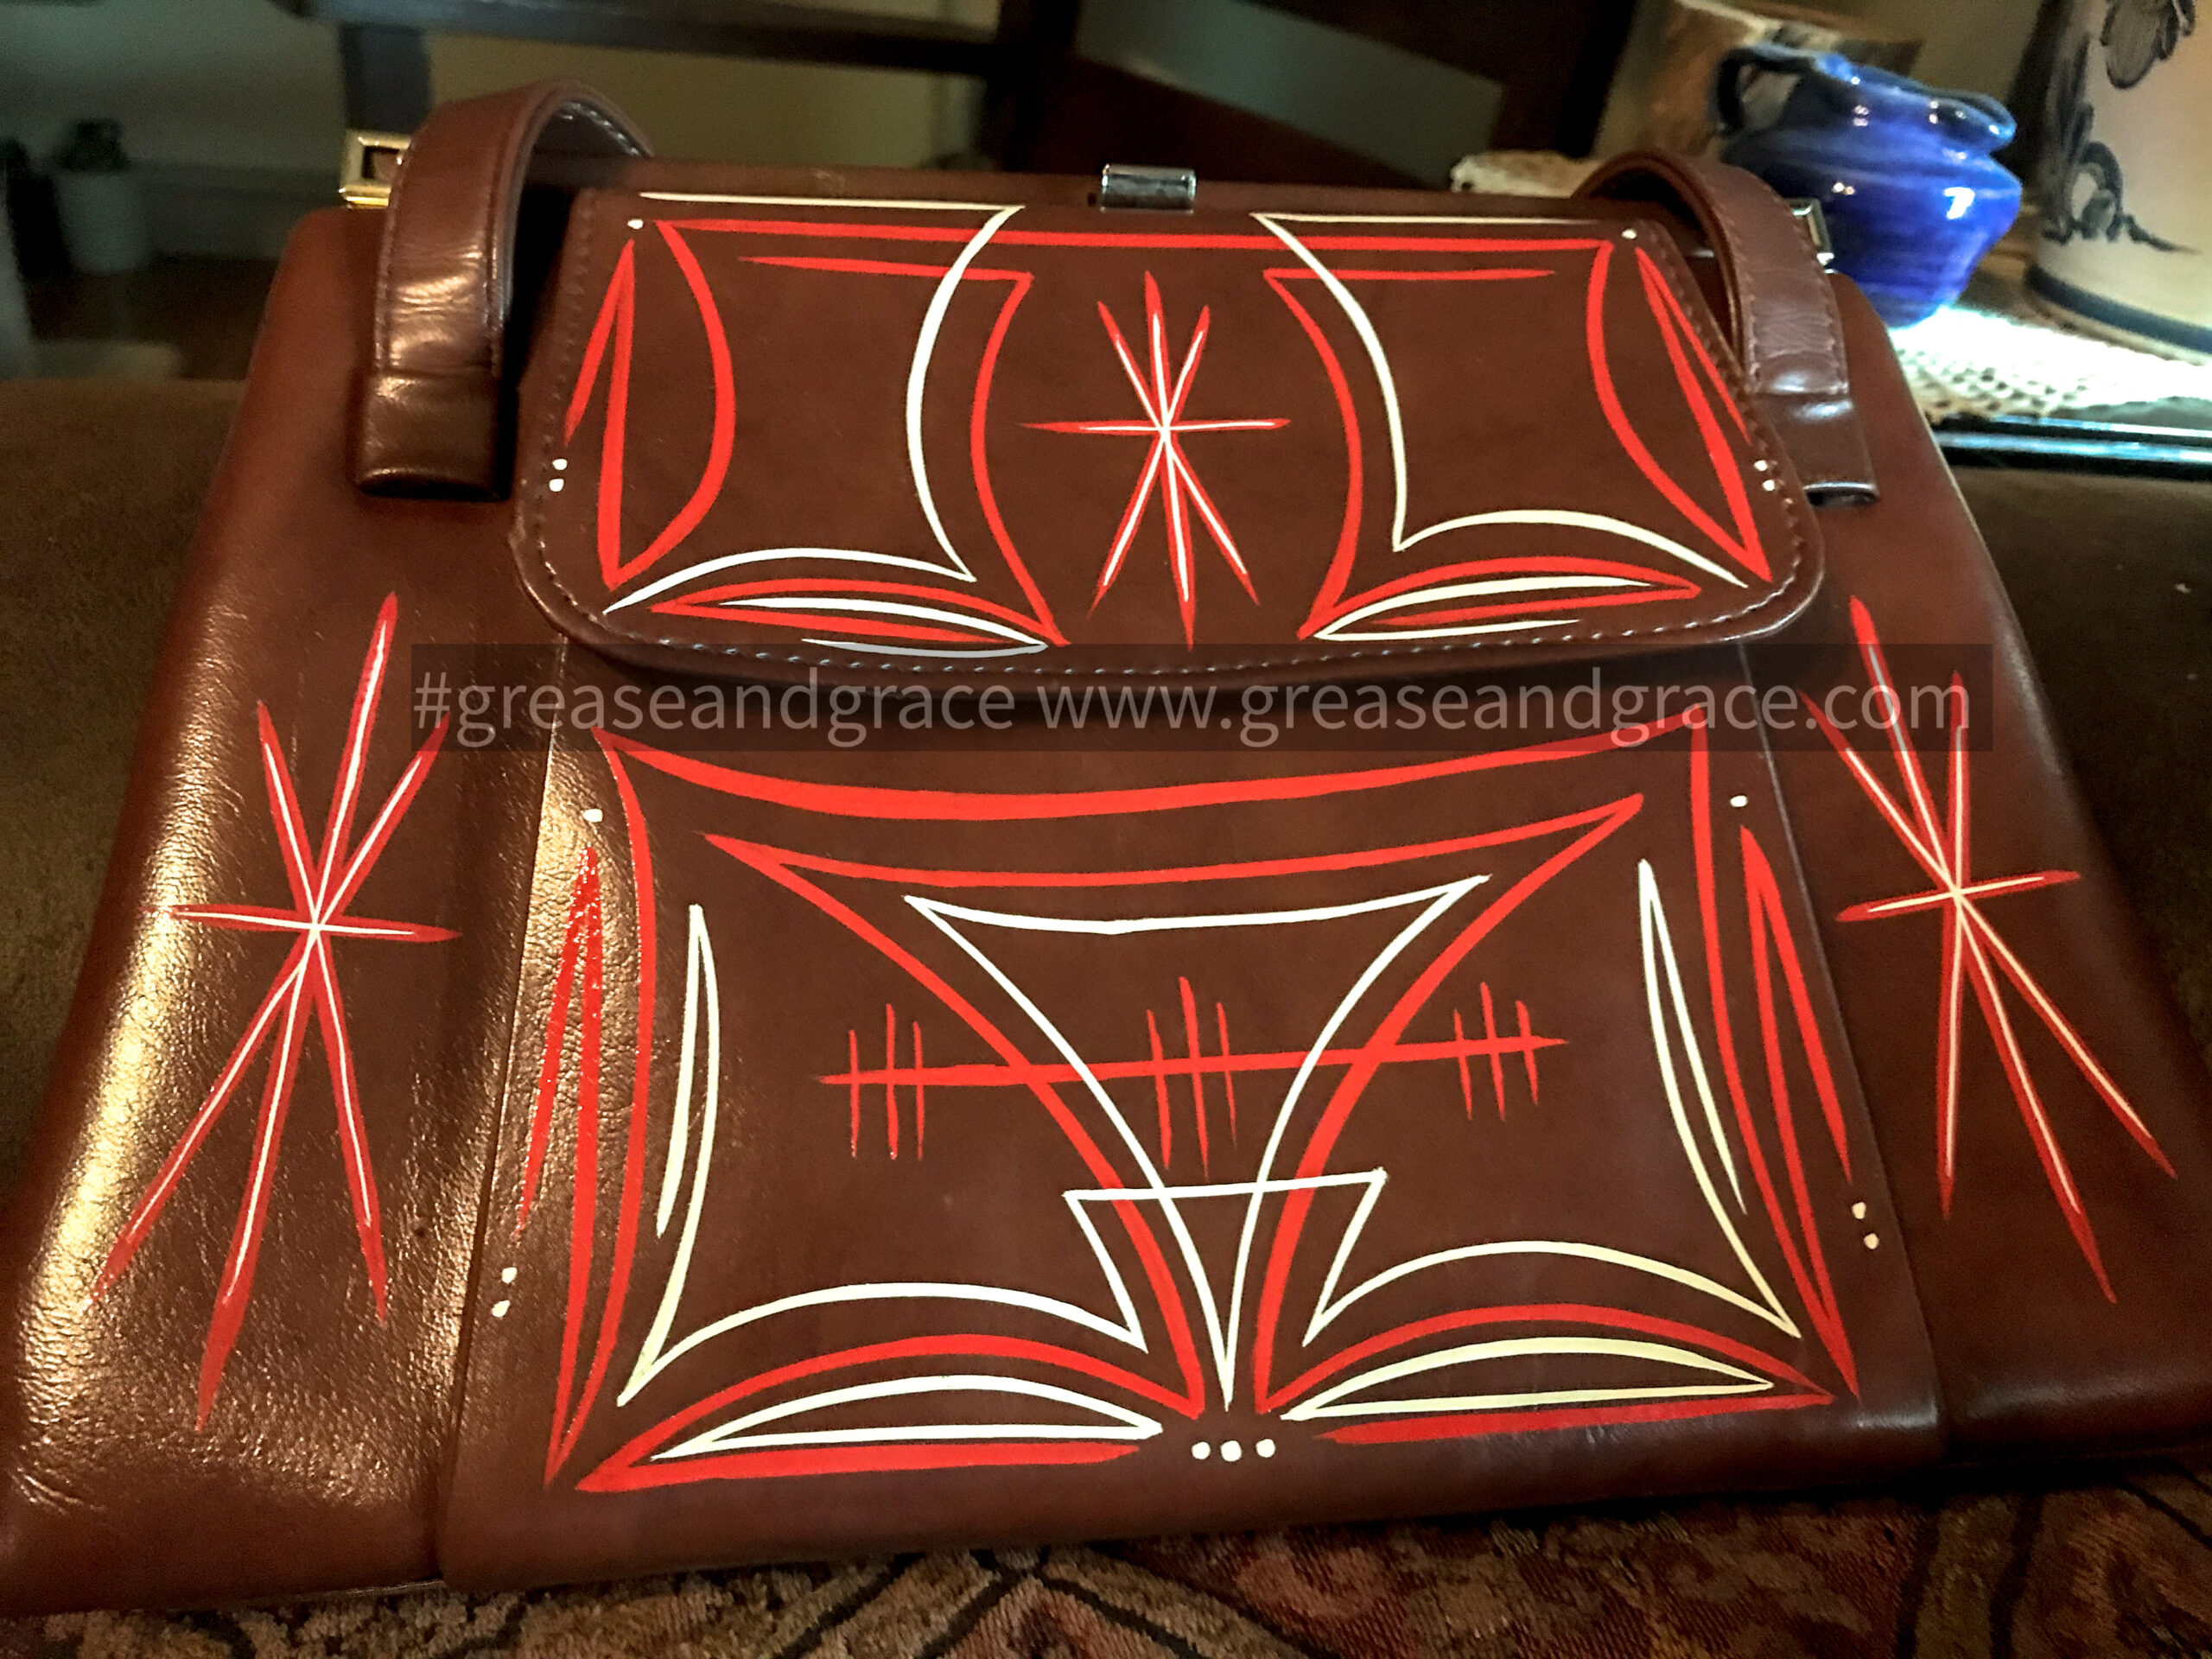 pinstriped vintage purse in orange and tan and white colors